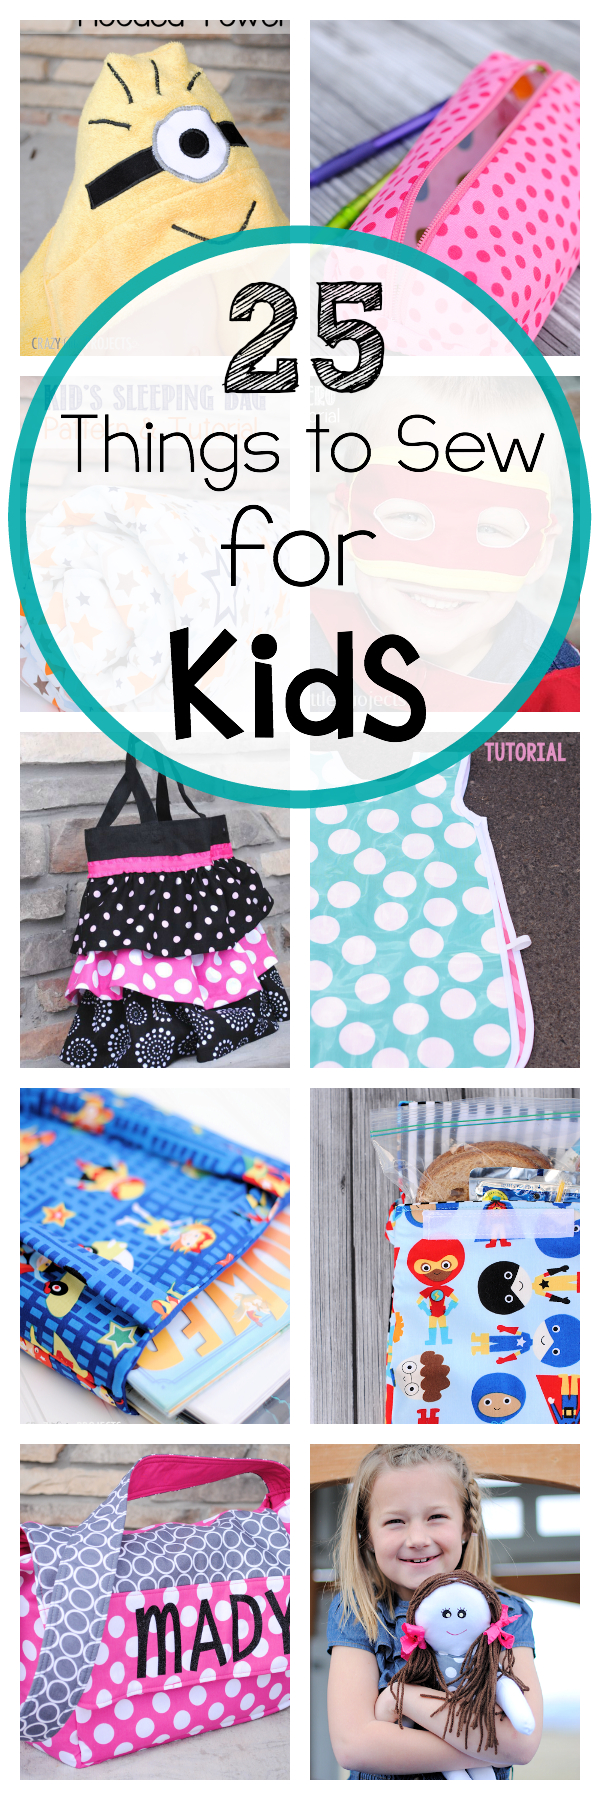 Sewing Ideas For Kids